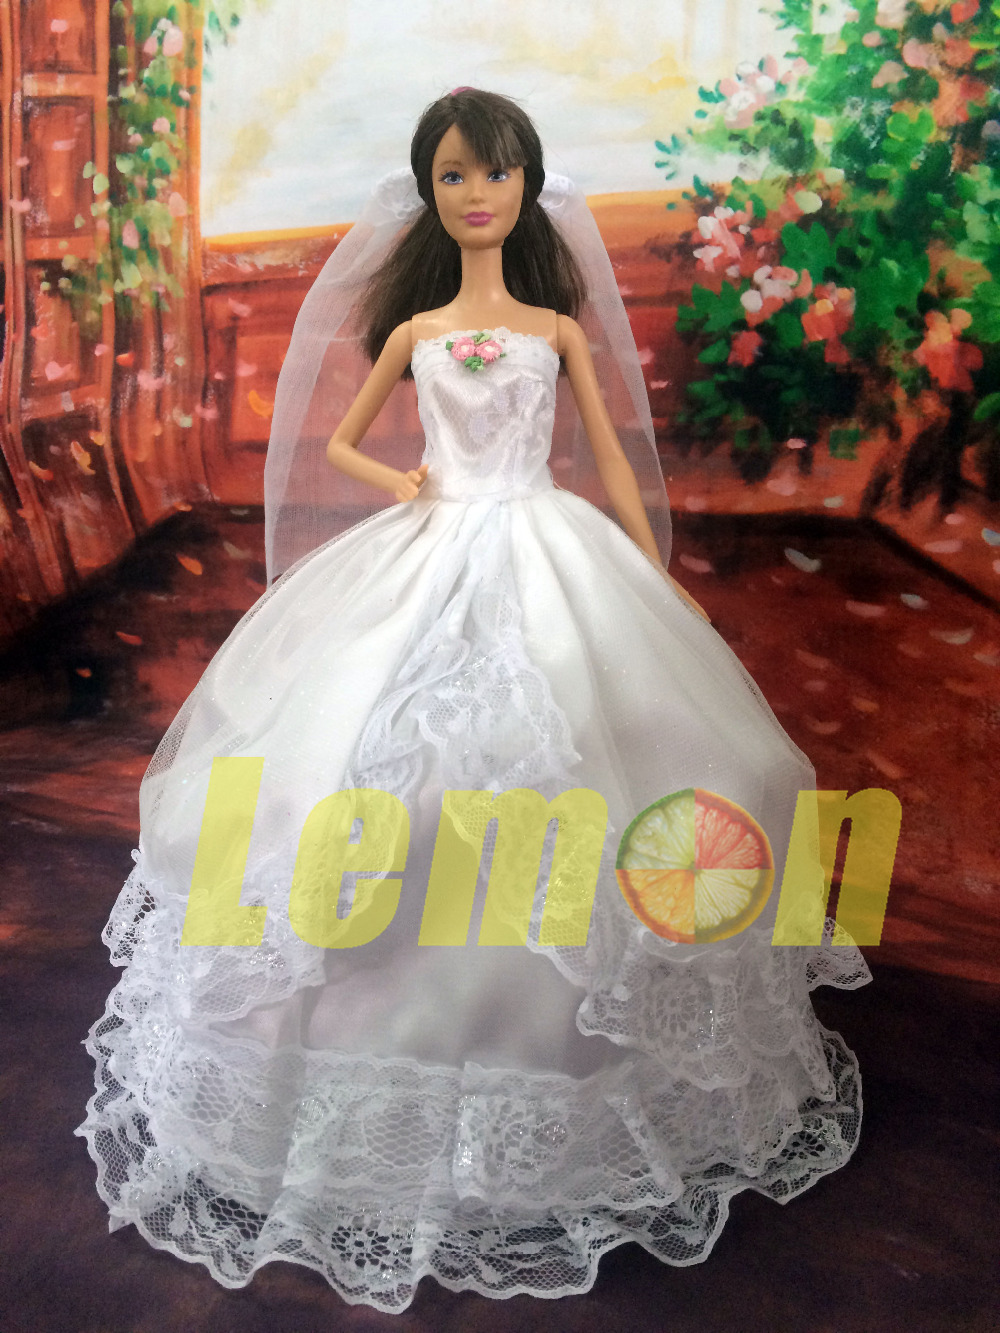 Pretty Wedding Dress With Lace + Veil Princess Gown Lady Clothes For Barbie Doll White Colour Festival Birthday Gift(China (Mainland))